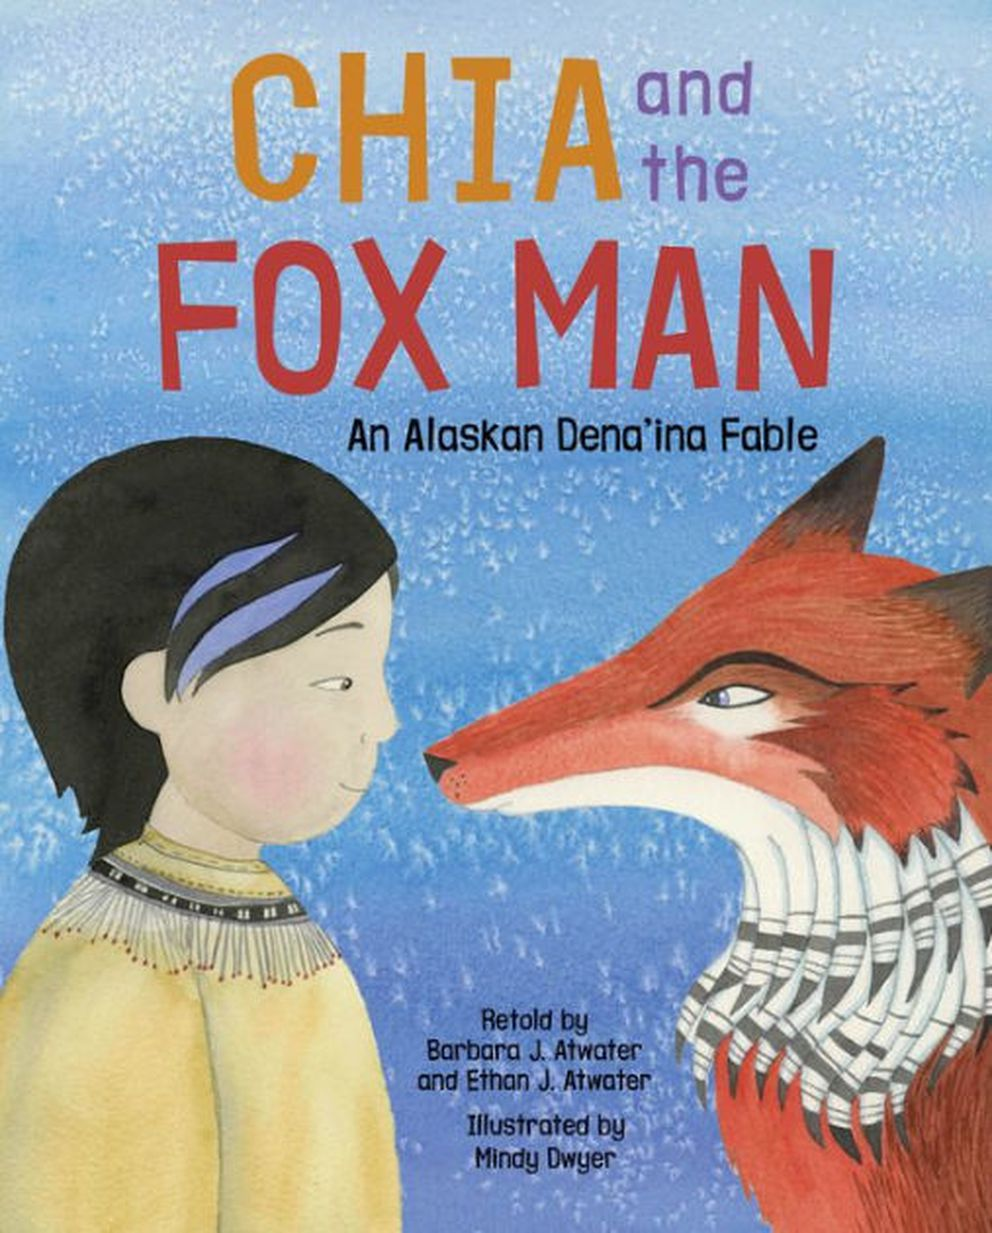 """Chia and the Fox Man, ' by Barbara J. and Ethan J. Atwater, illustrated by Mindy Dwyer."